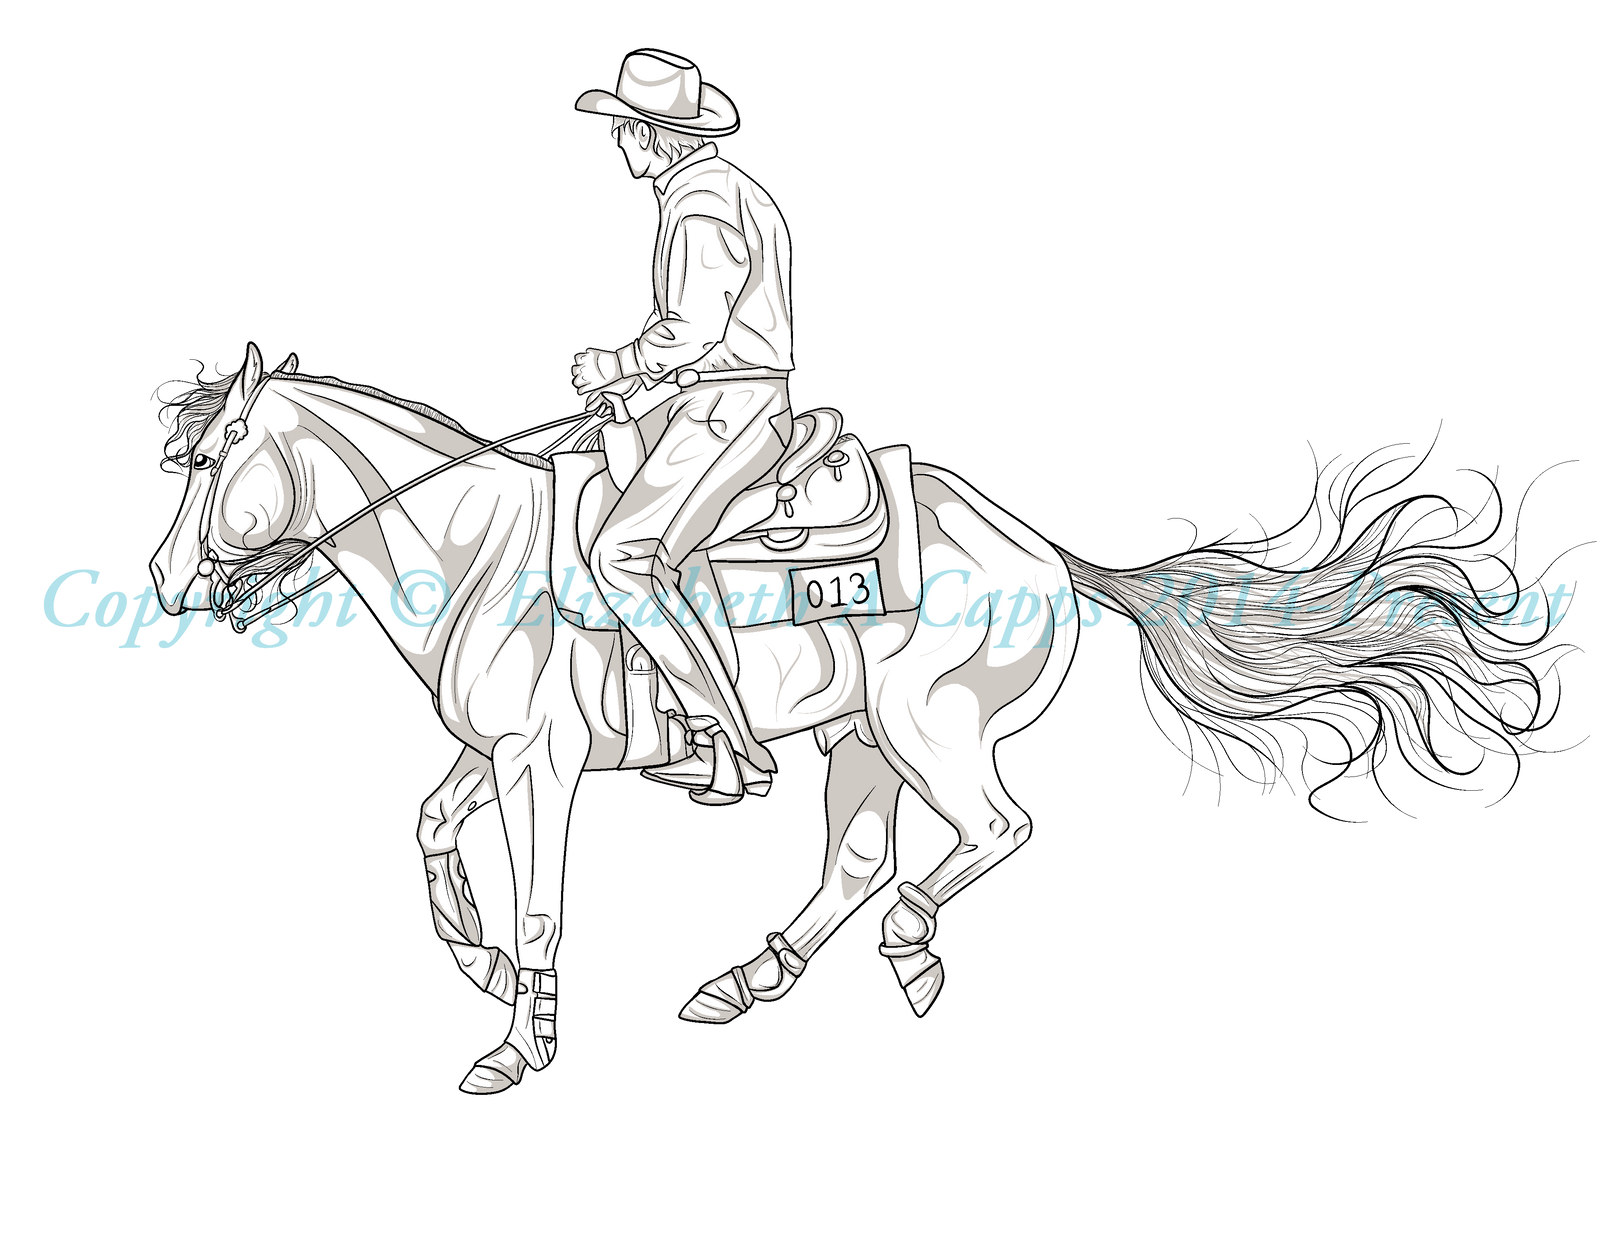 Line Drawing No Shading : Reining lines shading by flamestorm on deviantart